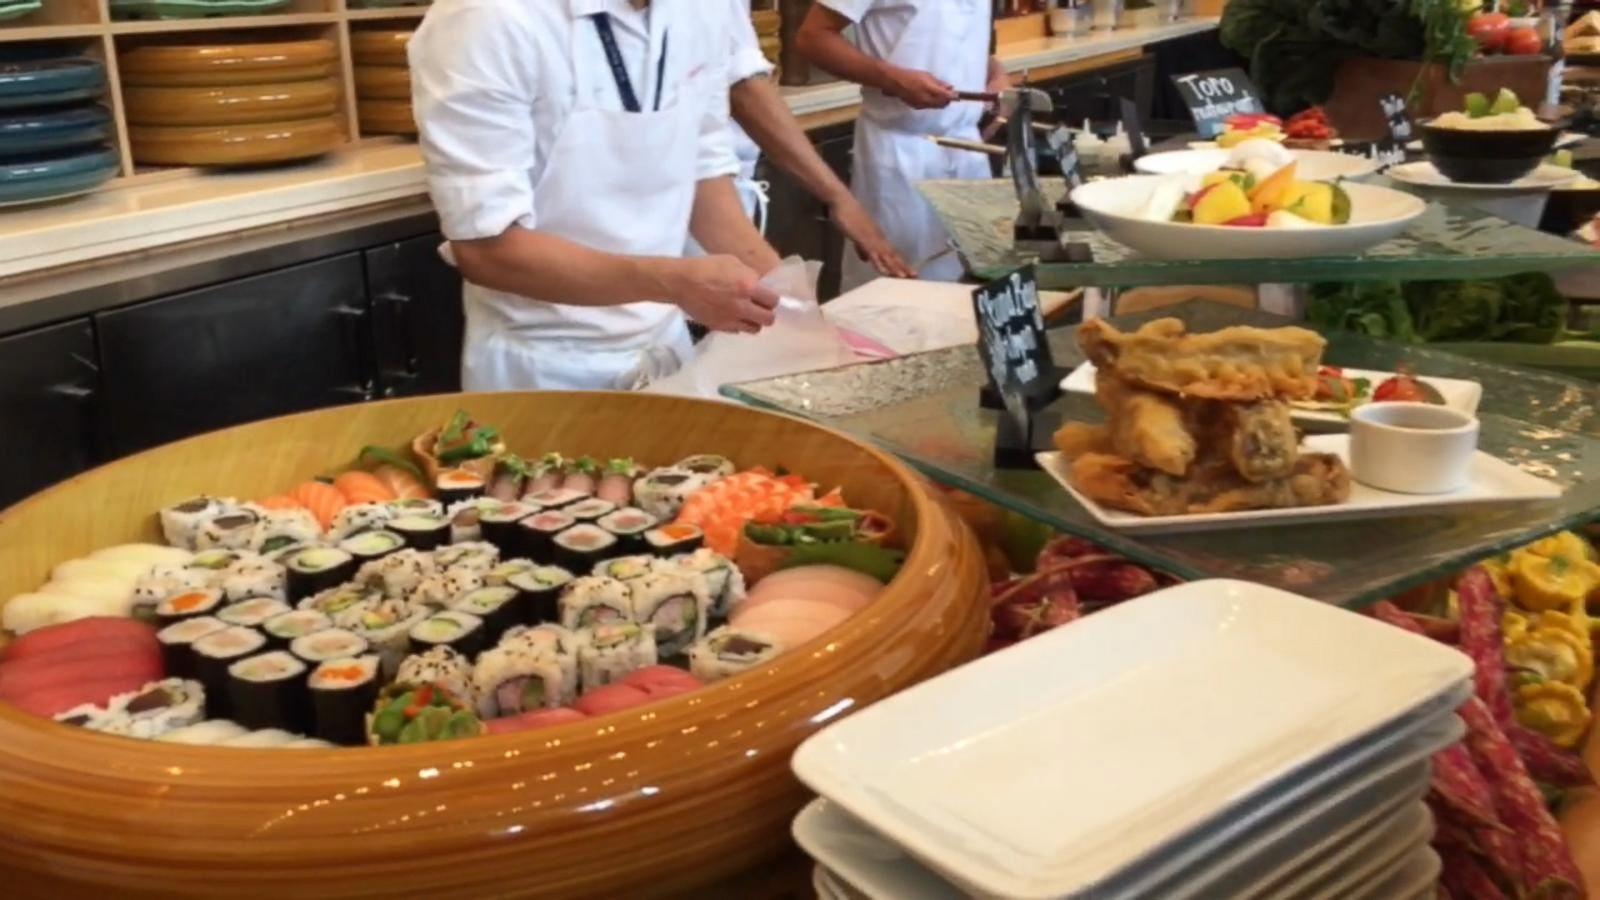 VIDEO: Taste Testing Food Available at the U.S. Open